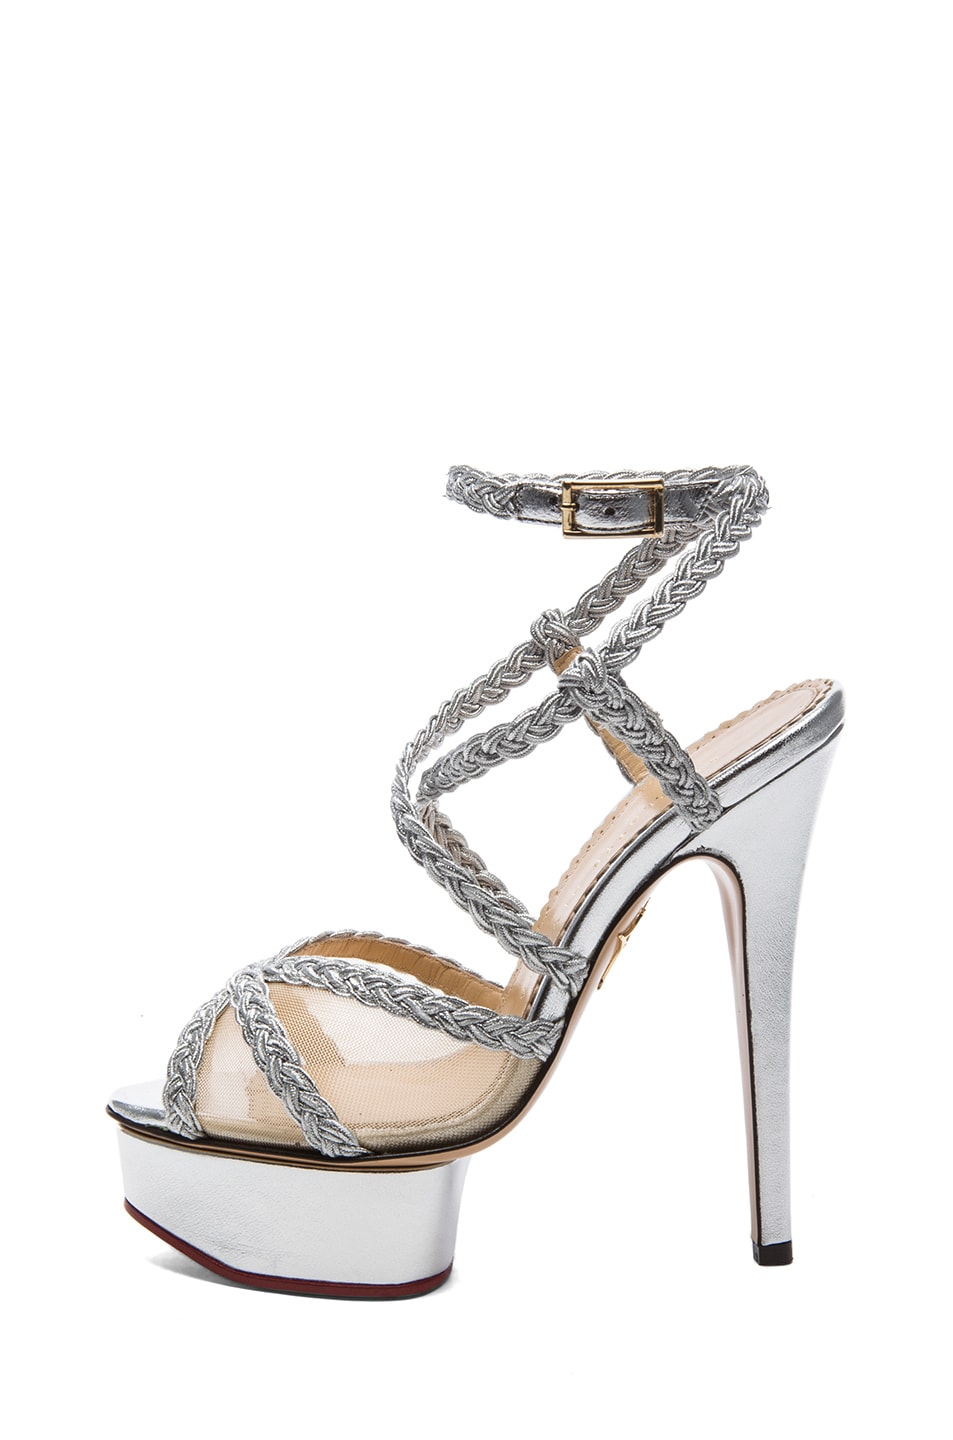 Image 1 of Charlotte Olympia Isadora Metallic Nappa Leather Heel in Silver